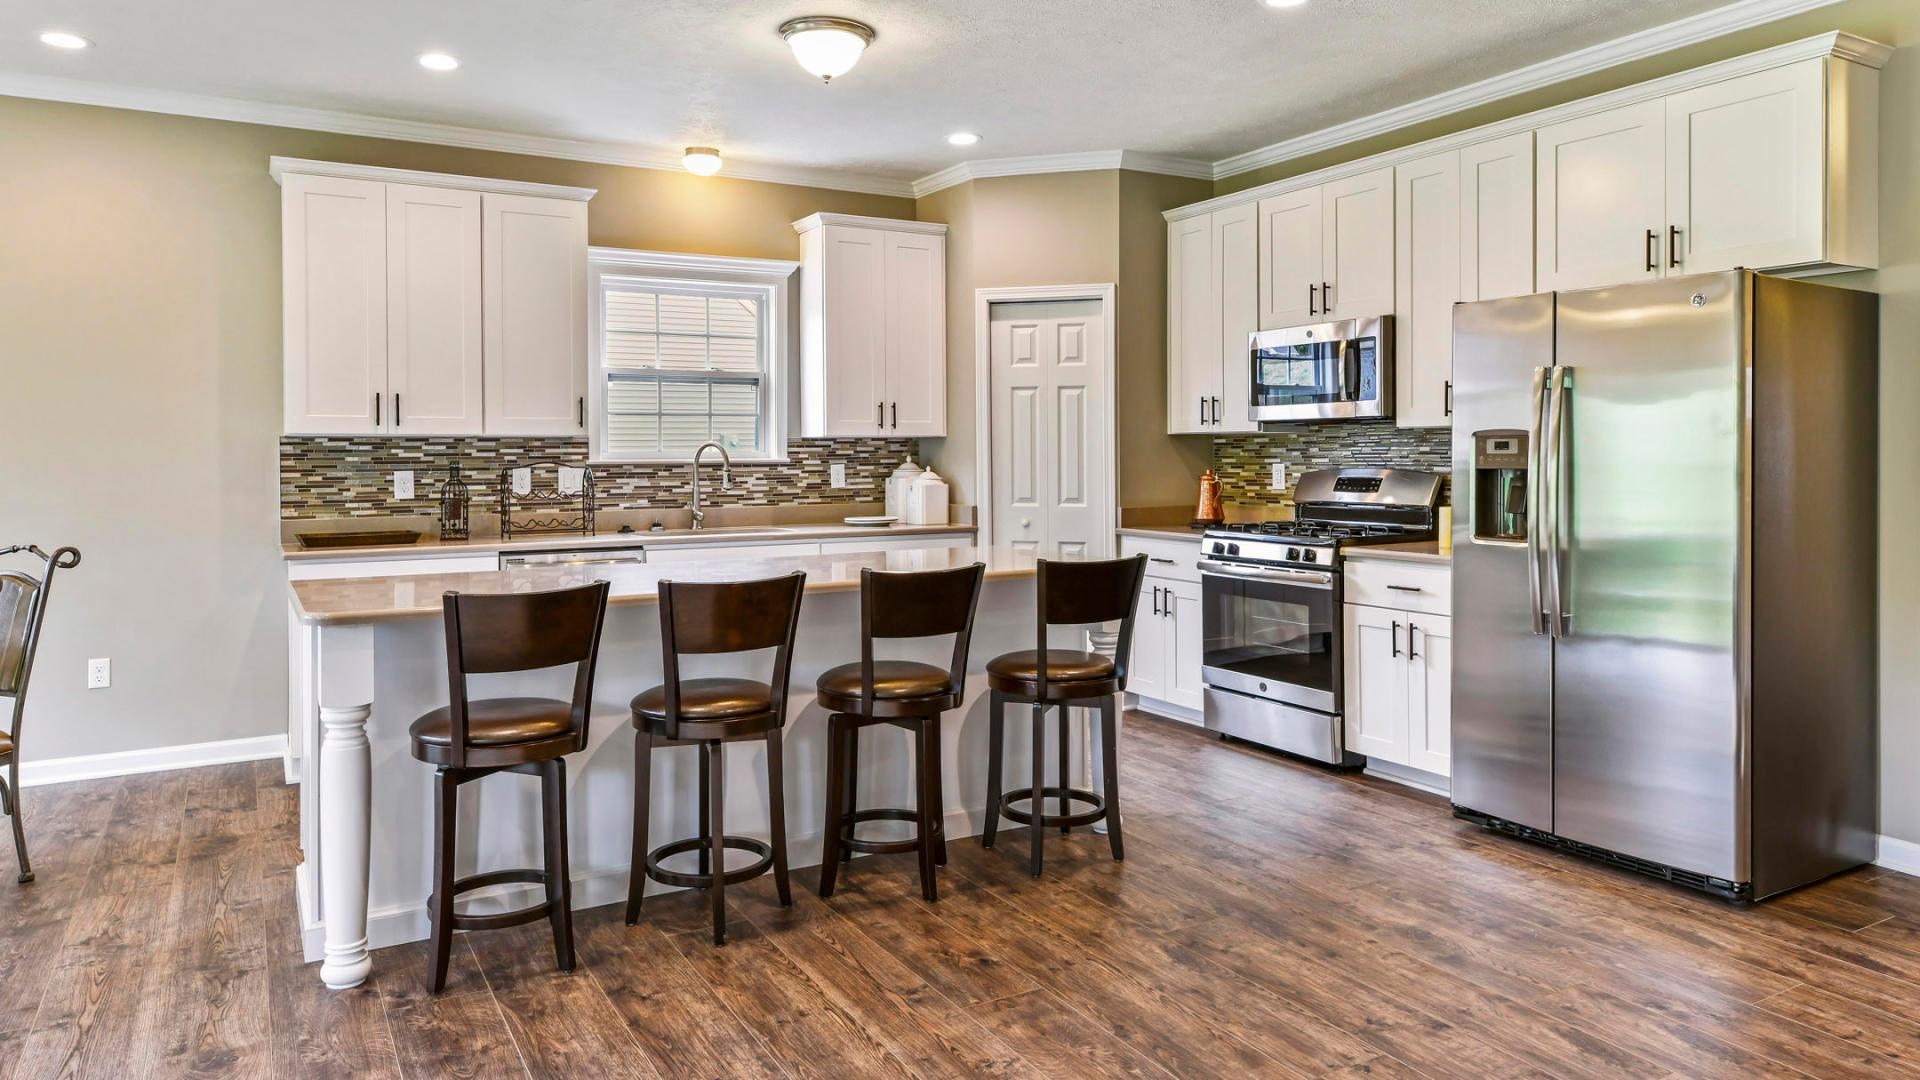 Kitchen featured in the Sanibel By Maronda Homes in Columbus, OH